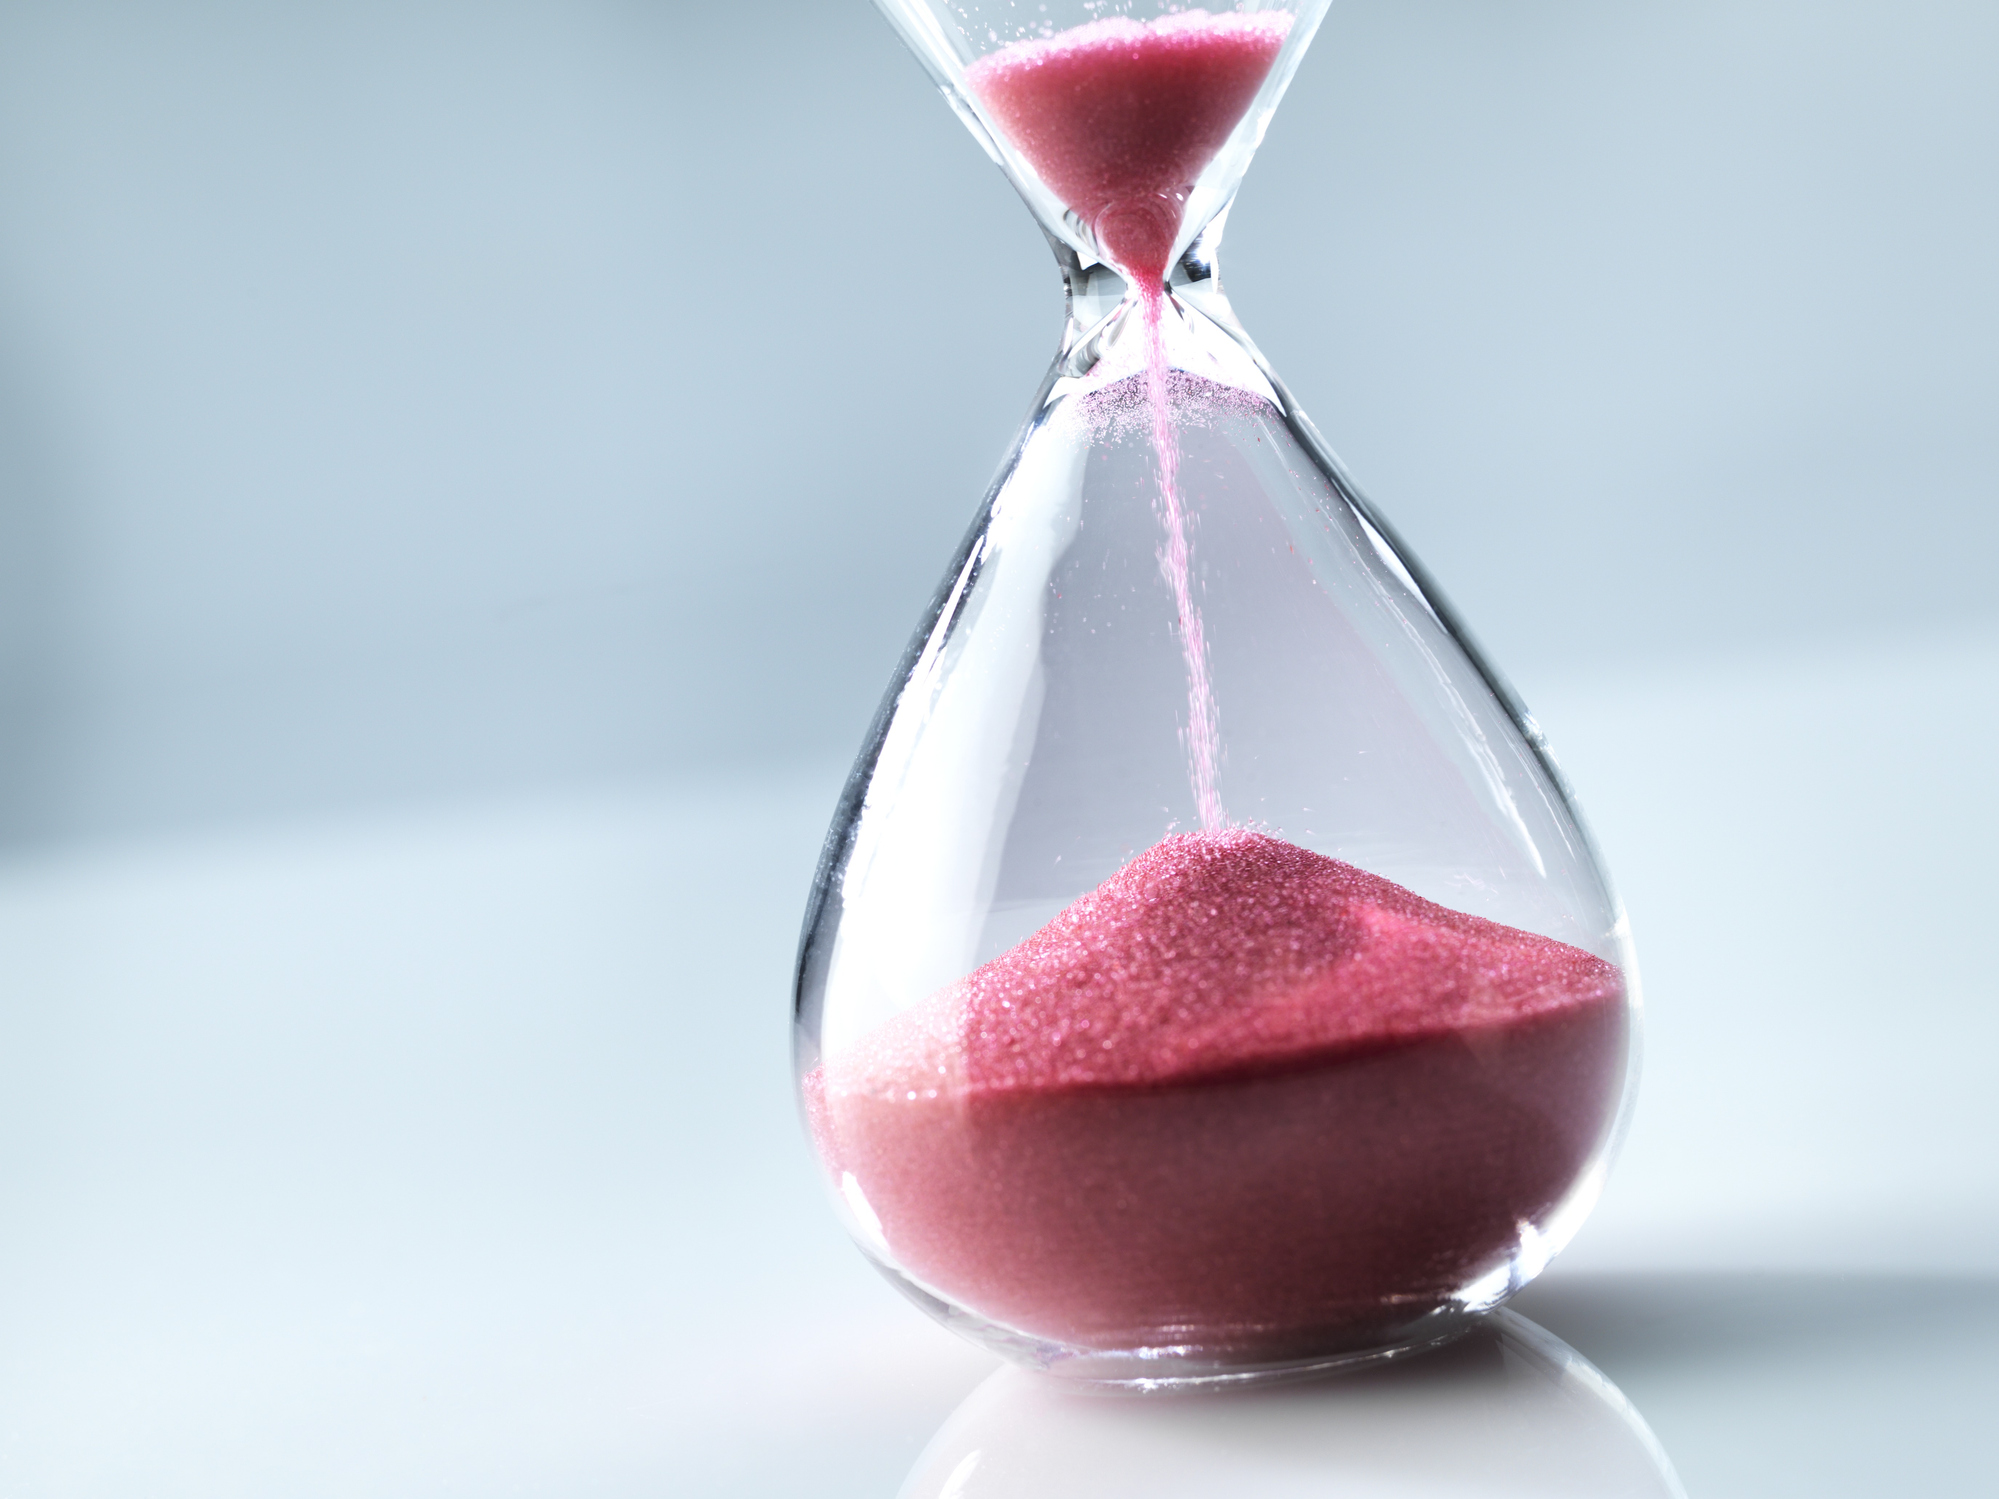 Sand flowing through an hourglass.